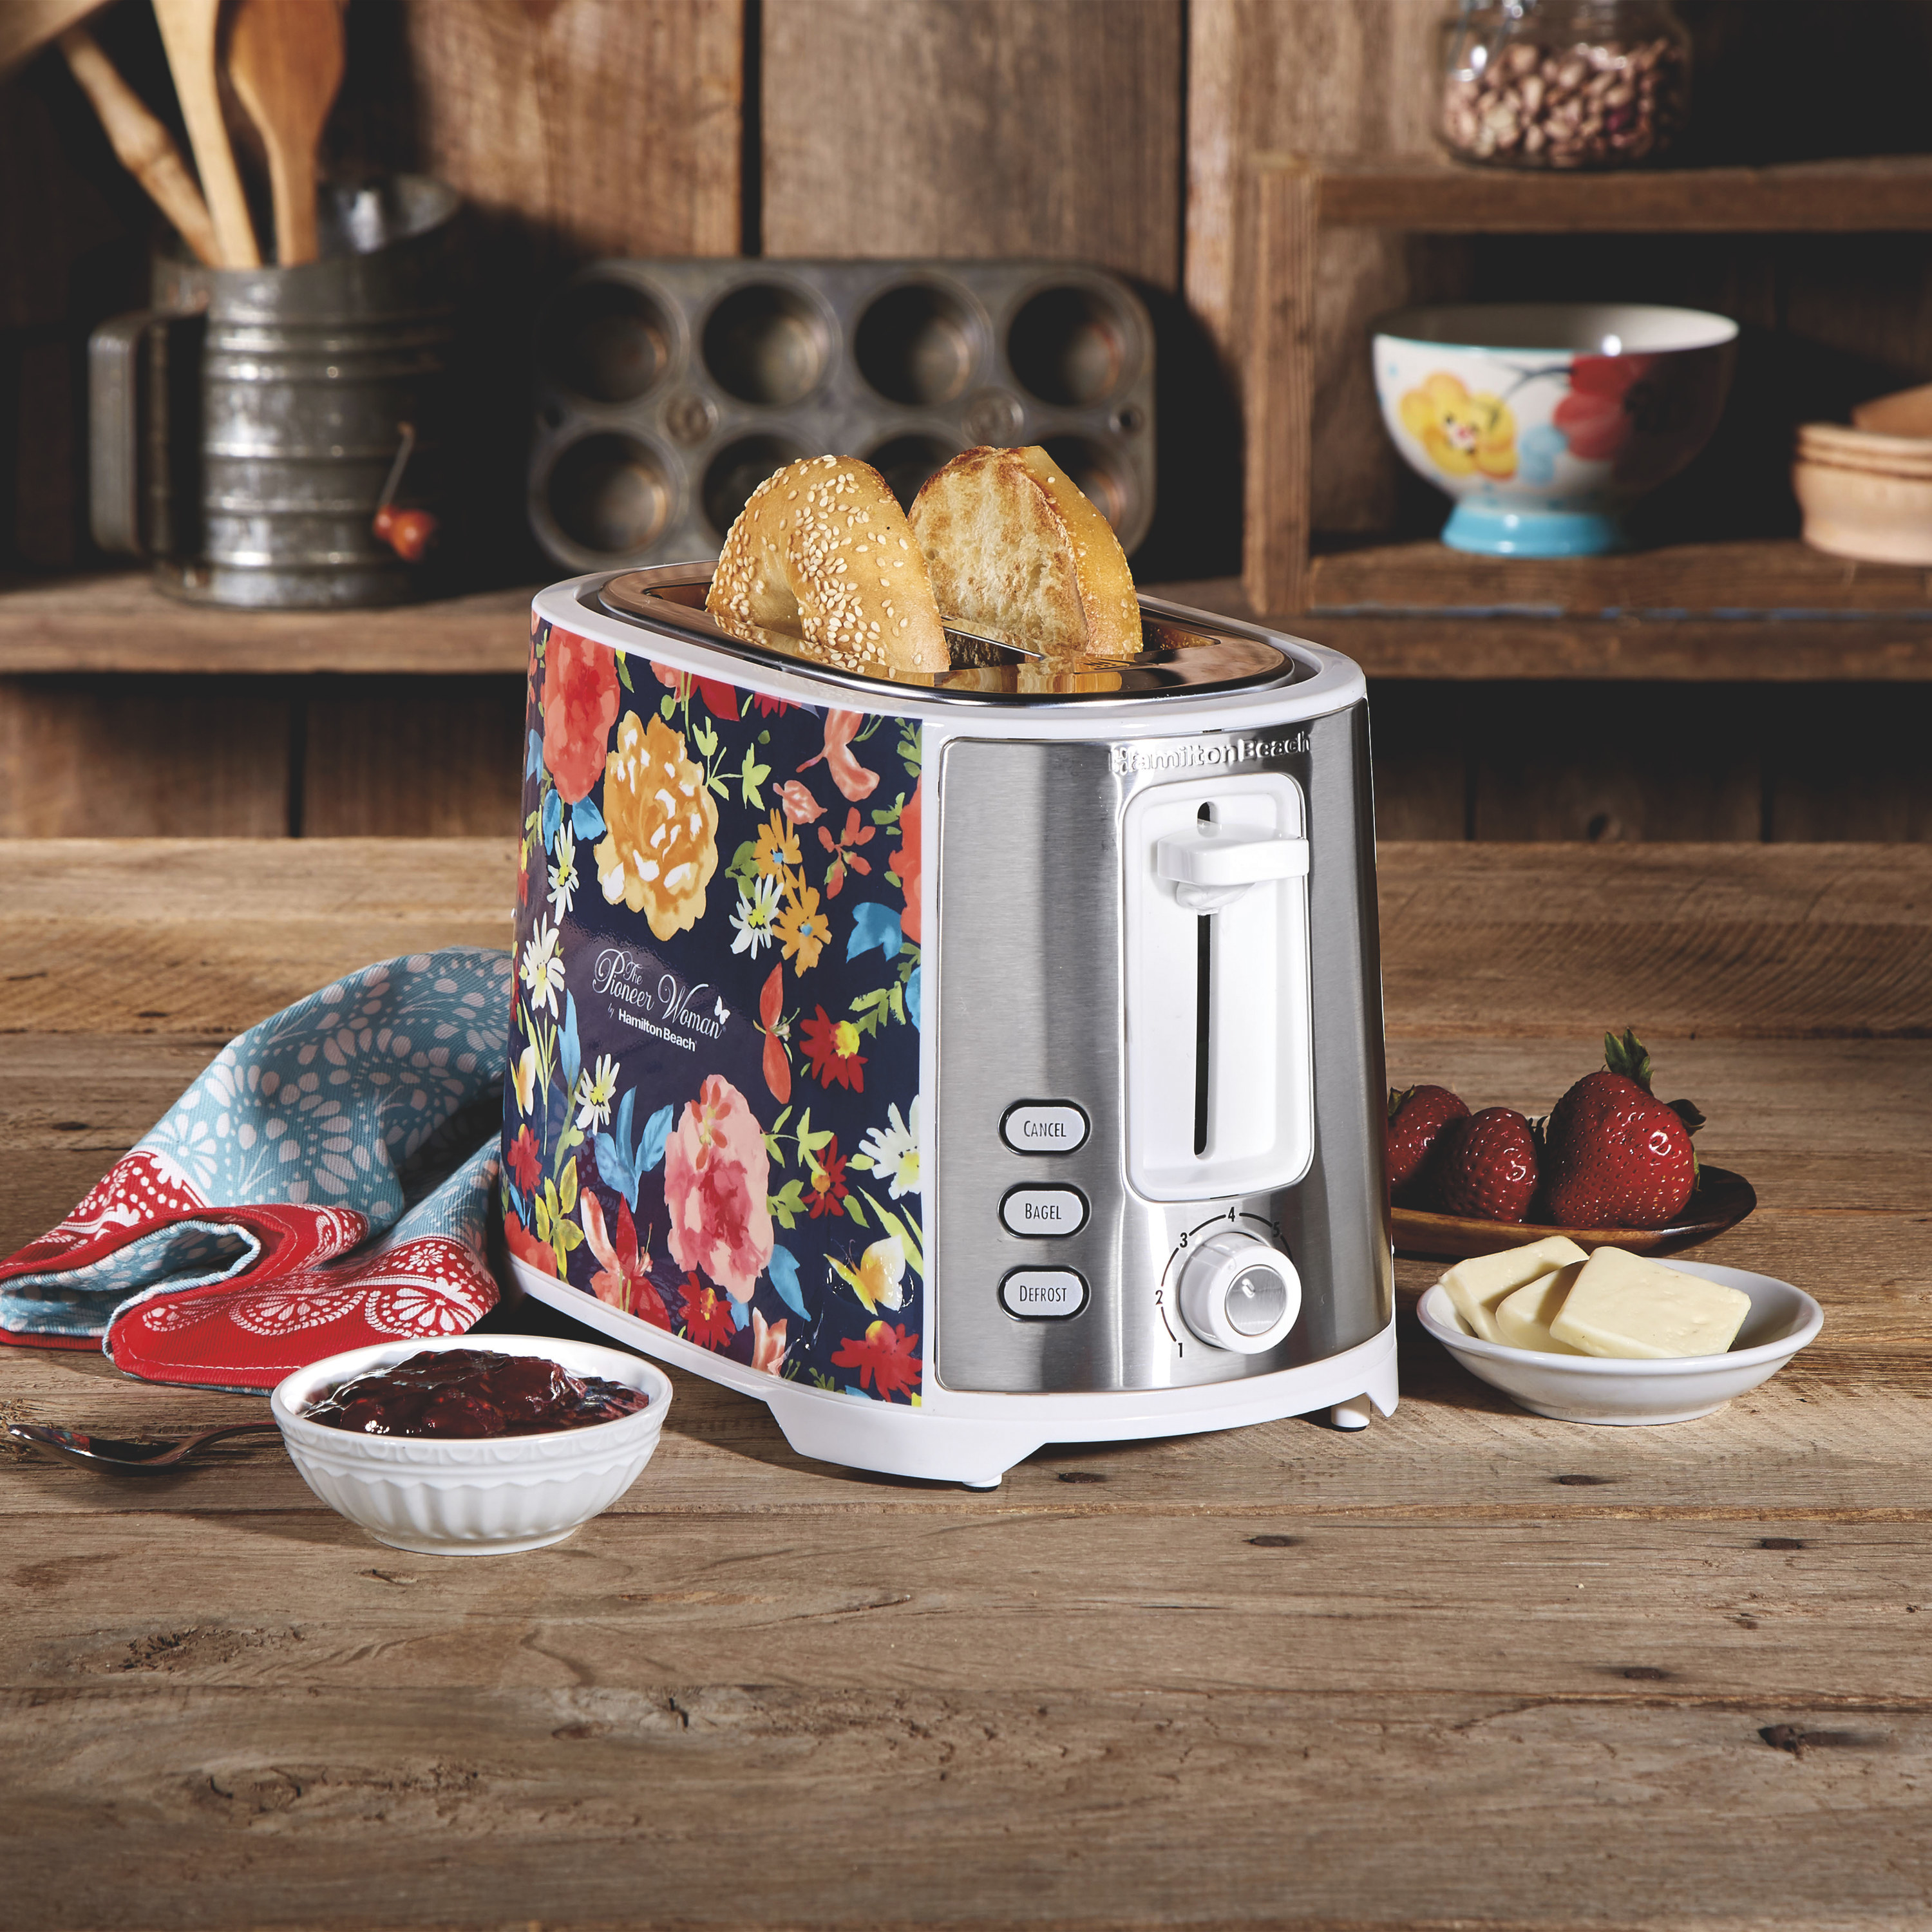 a top loaded toaster with a floral pattern on it